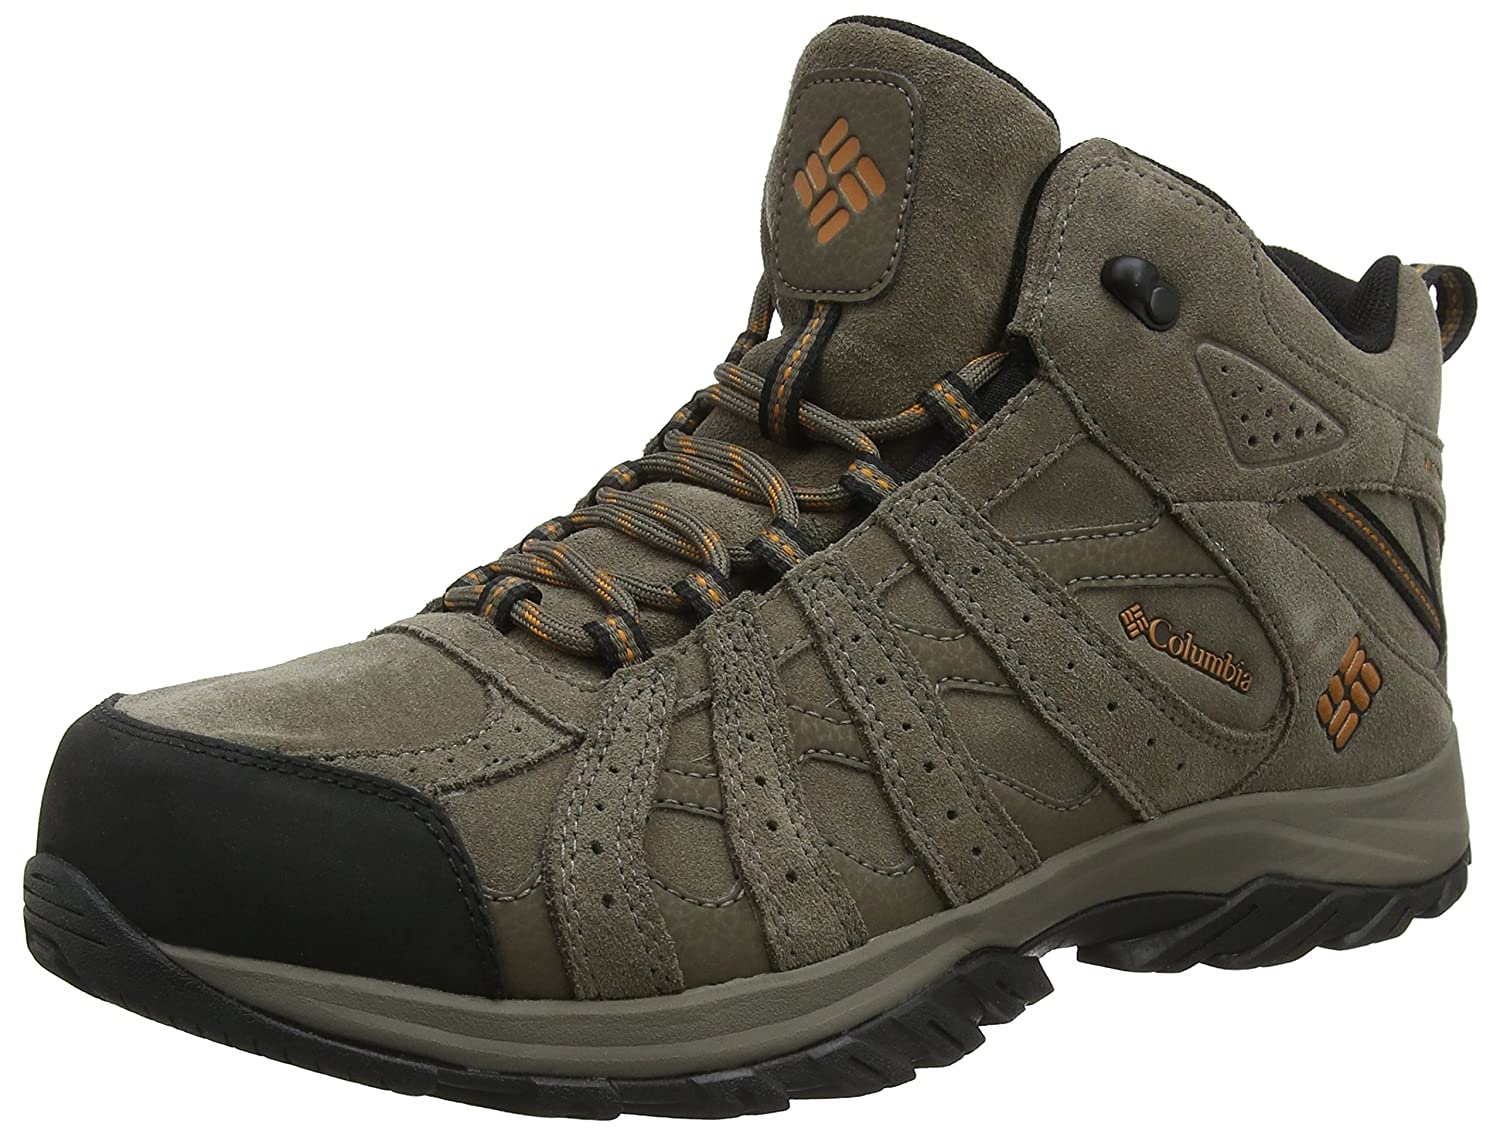 TALLA 43.5 EU. Columbia Canyon Point Mid Leather Omni-Tech, Zapatillas de Senderismo para Hombre